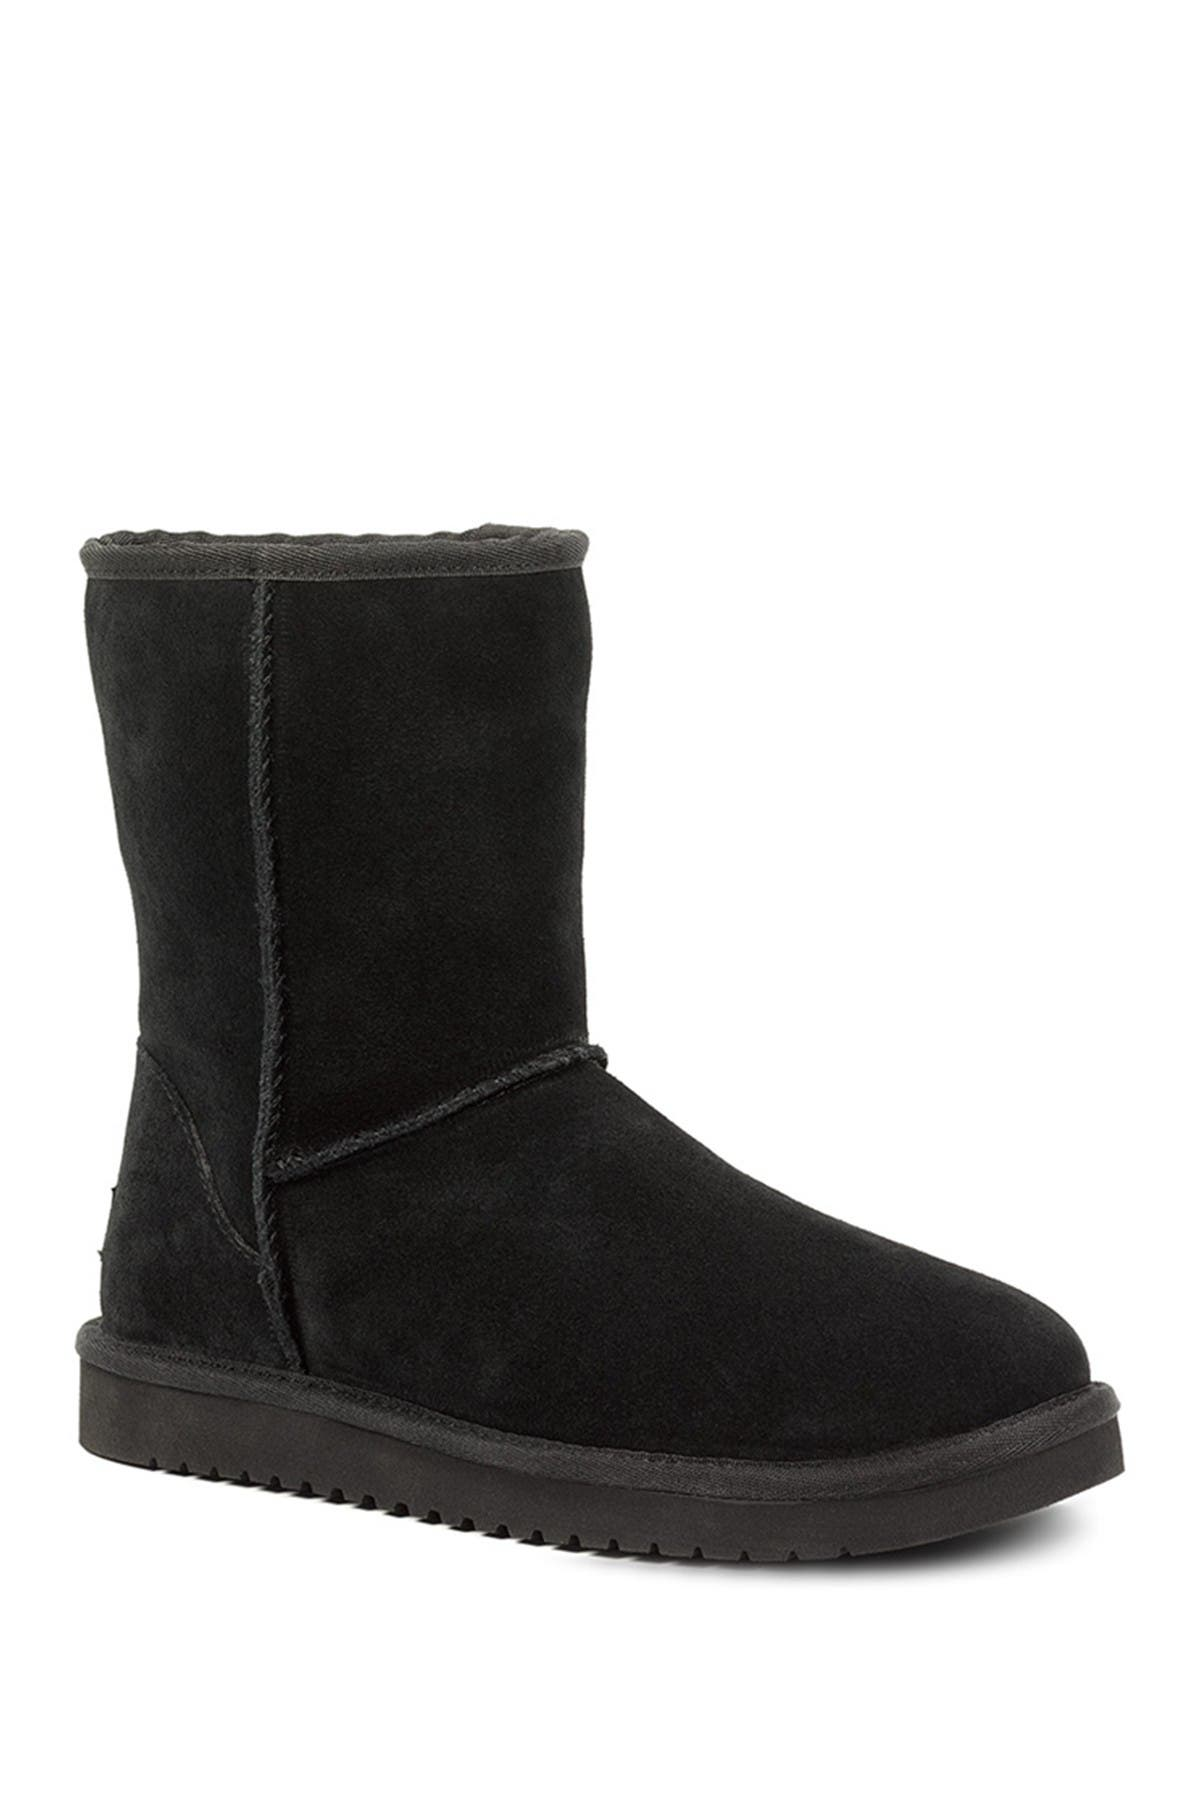 Image of KOOLABURRA BY UGG Classic Short Genuine Shearling & Faux Fur Lined Boot - Wide Width Available